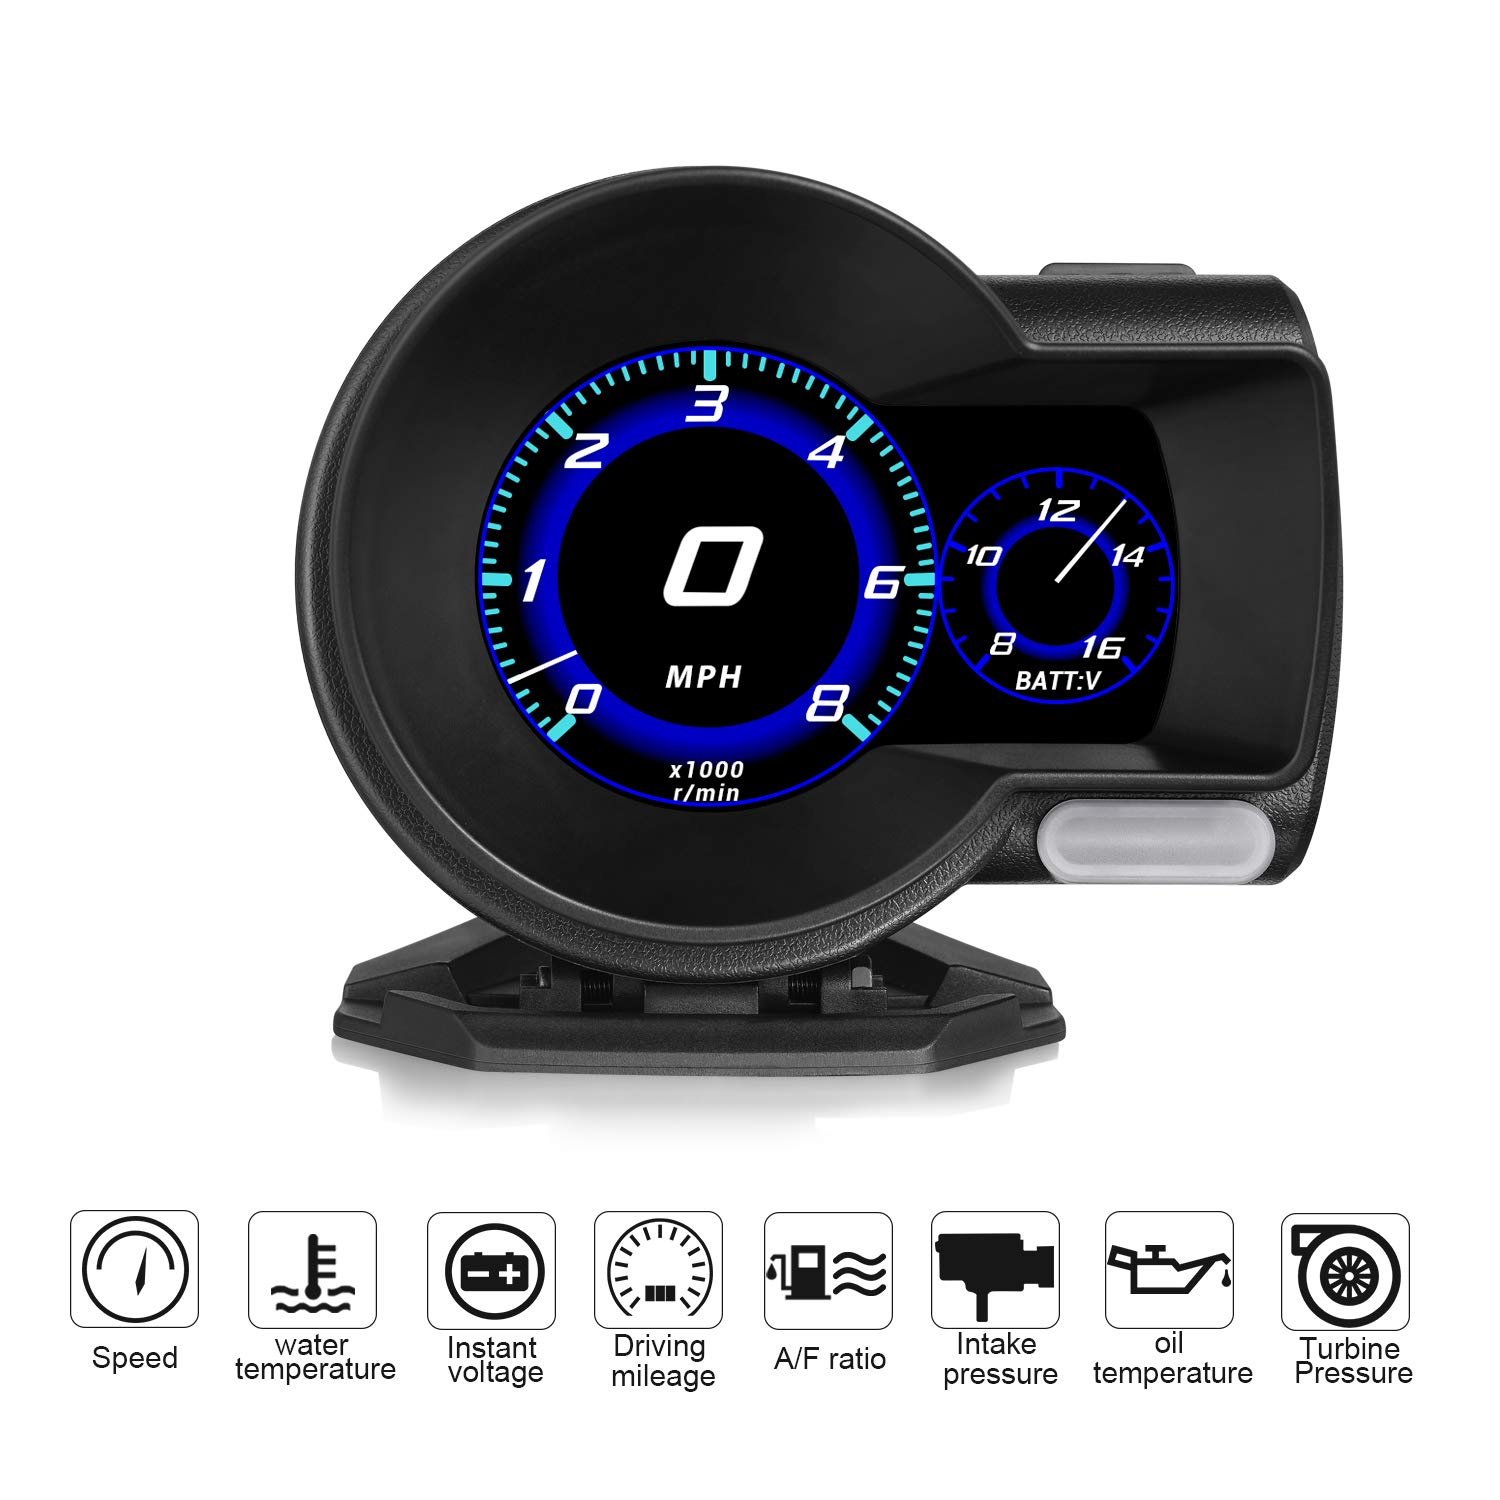 Widerlife Universal Car HUD Head Up Display OBDII EUOBD Multi-Function HD TFT LCD Instrument Refitting Code Table Display with Test Brake Test Overspeed Alarm by Widerlife